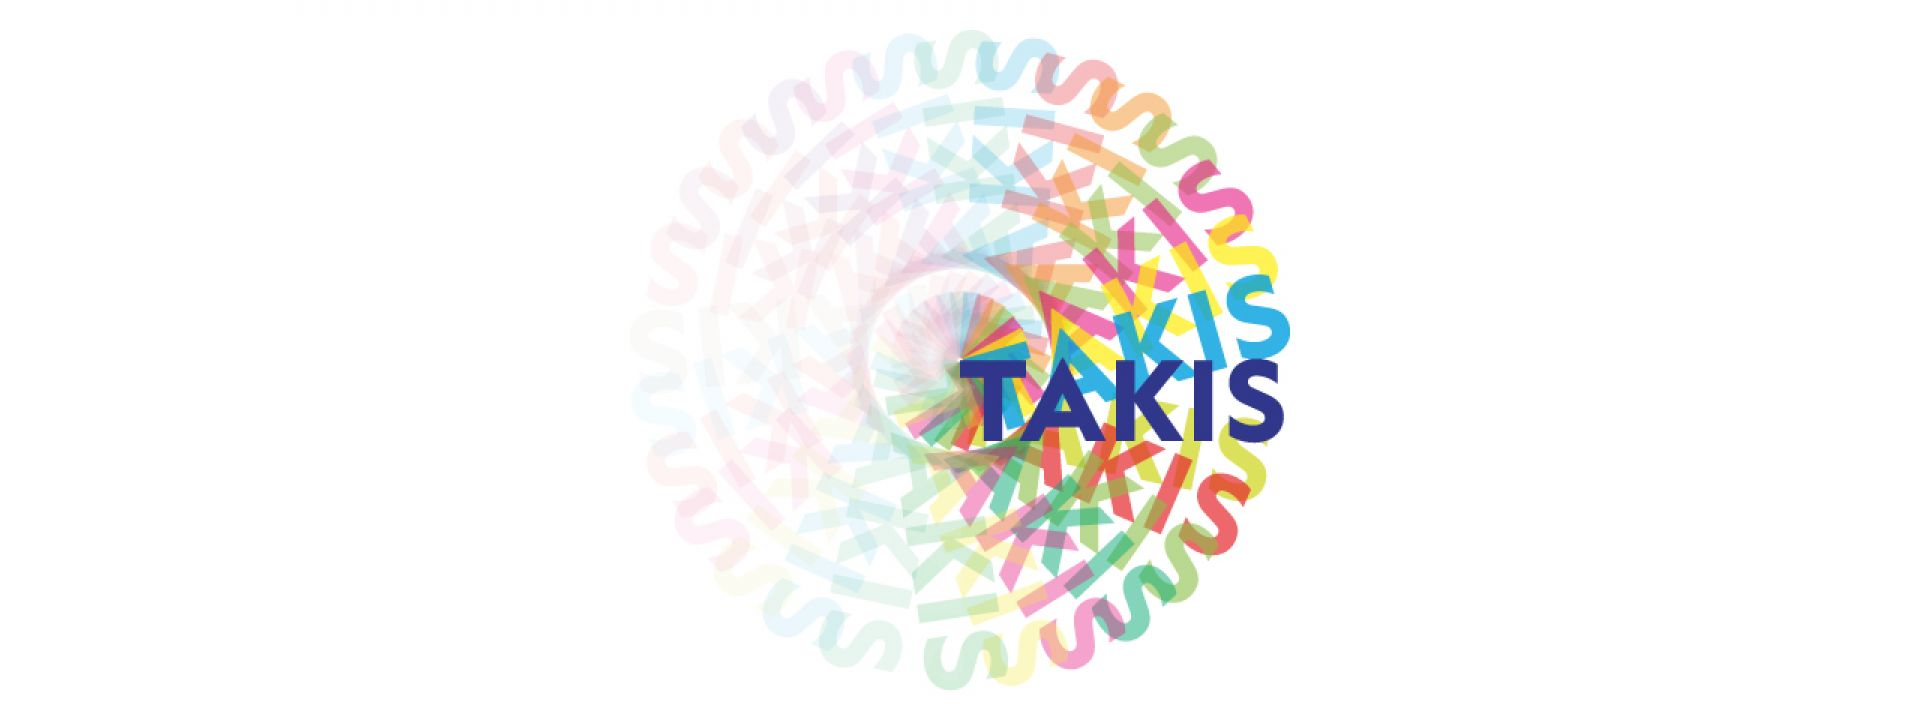 Multisensory workshop: Discover Takis' colours, shapes and flowers - Εικόνα